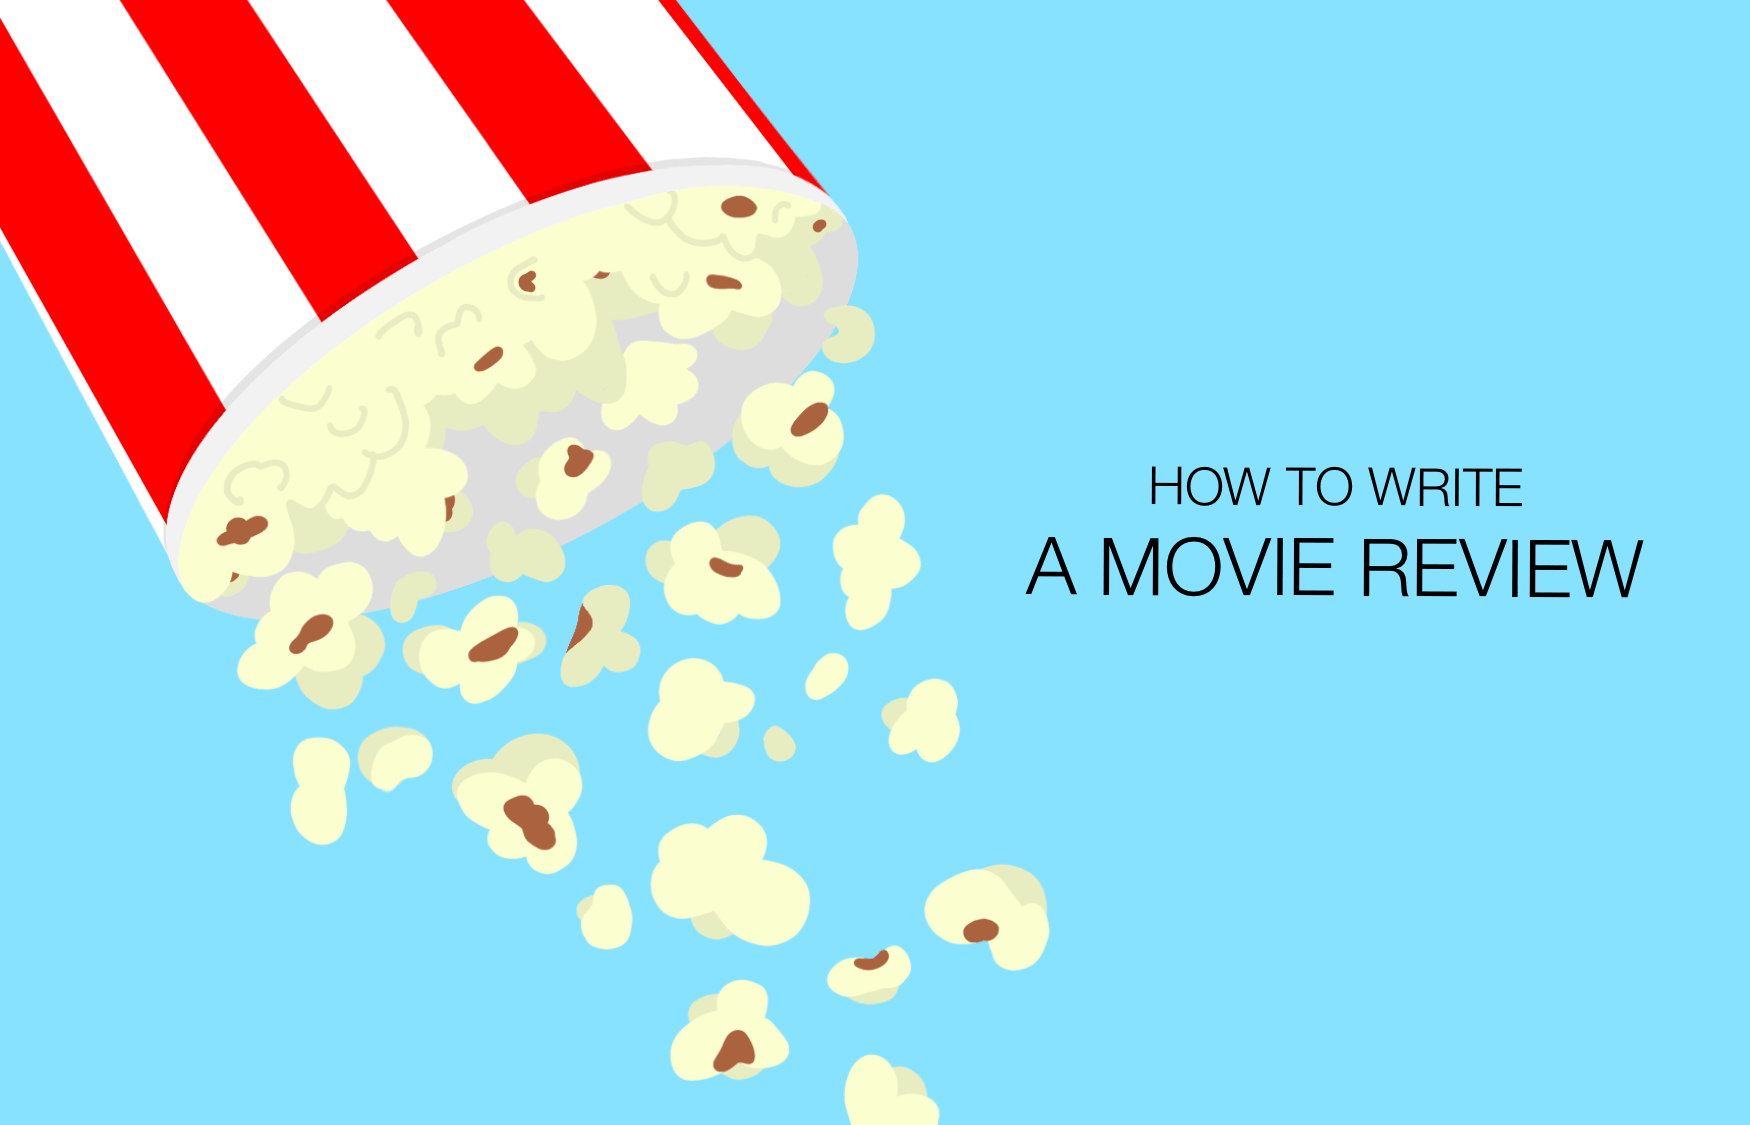 How To Write A Movie Review With Free Samples Essaypro